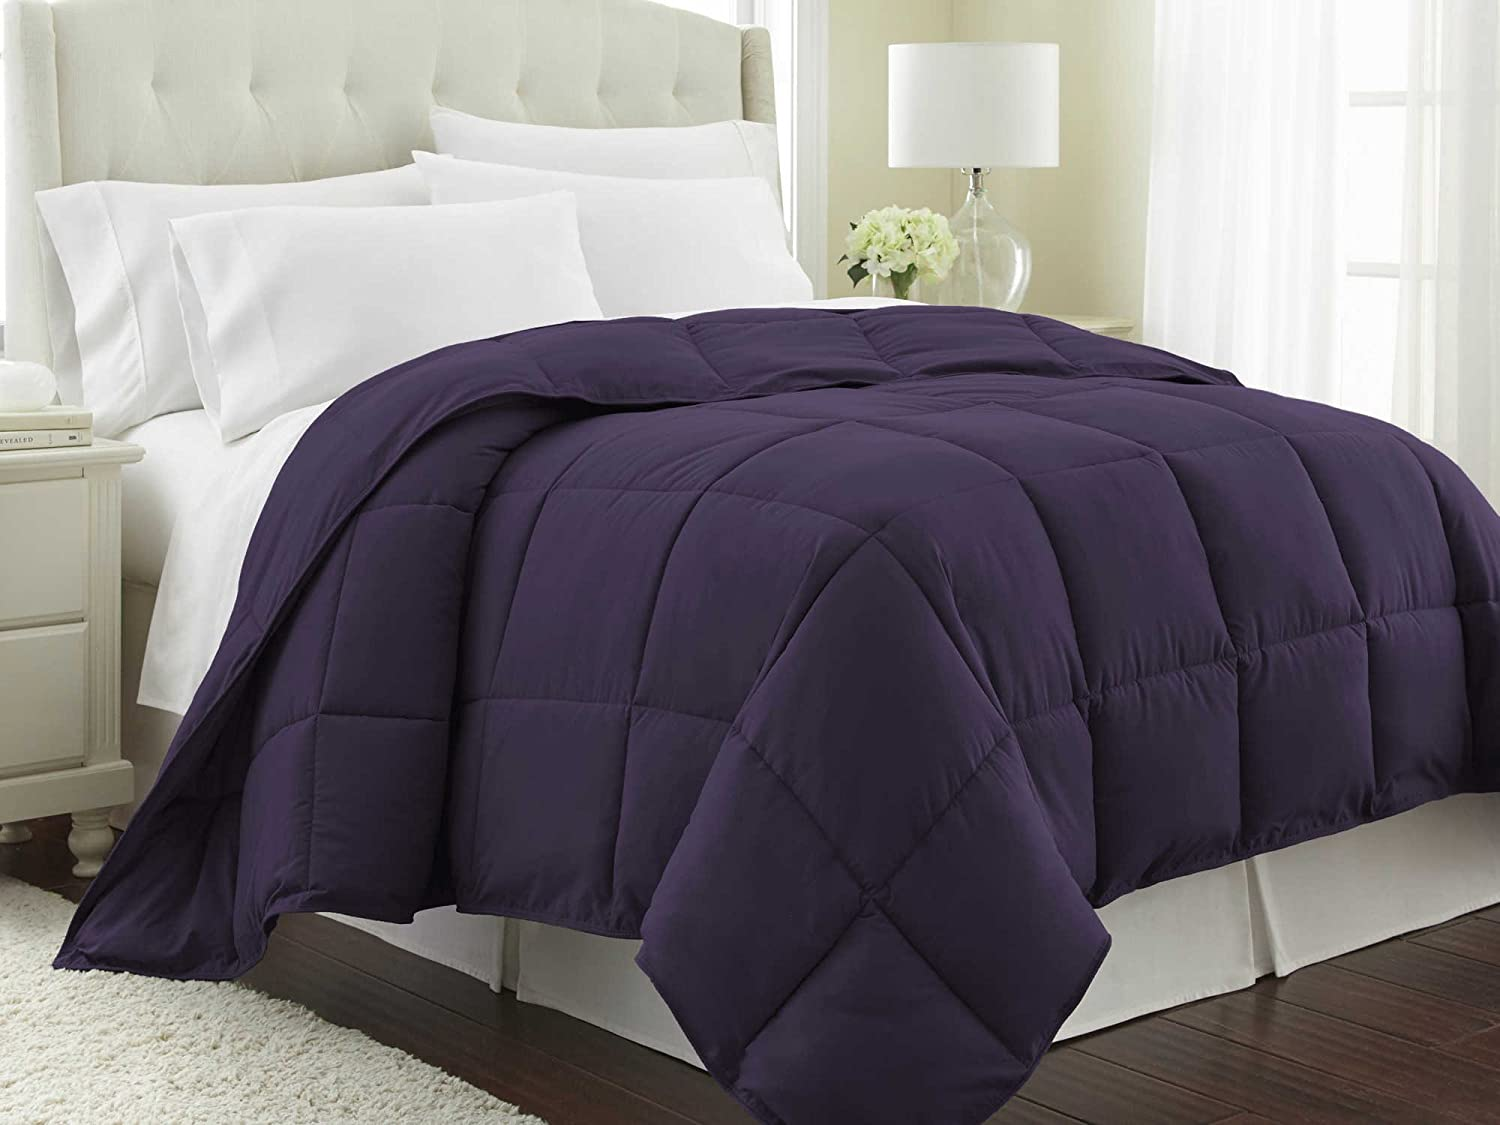 Southshore Fine Linens - Vilano Springs - - Down Alternate Weight Comforter - Eggplant Purple